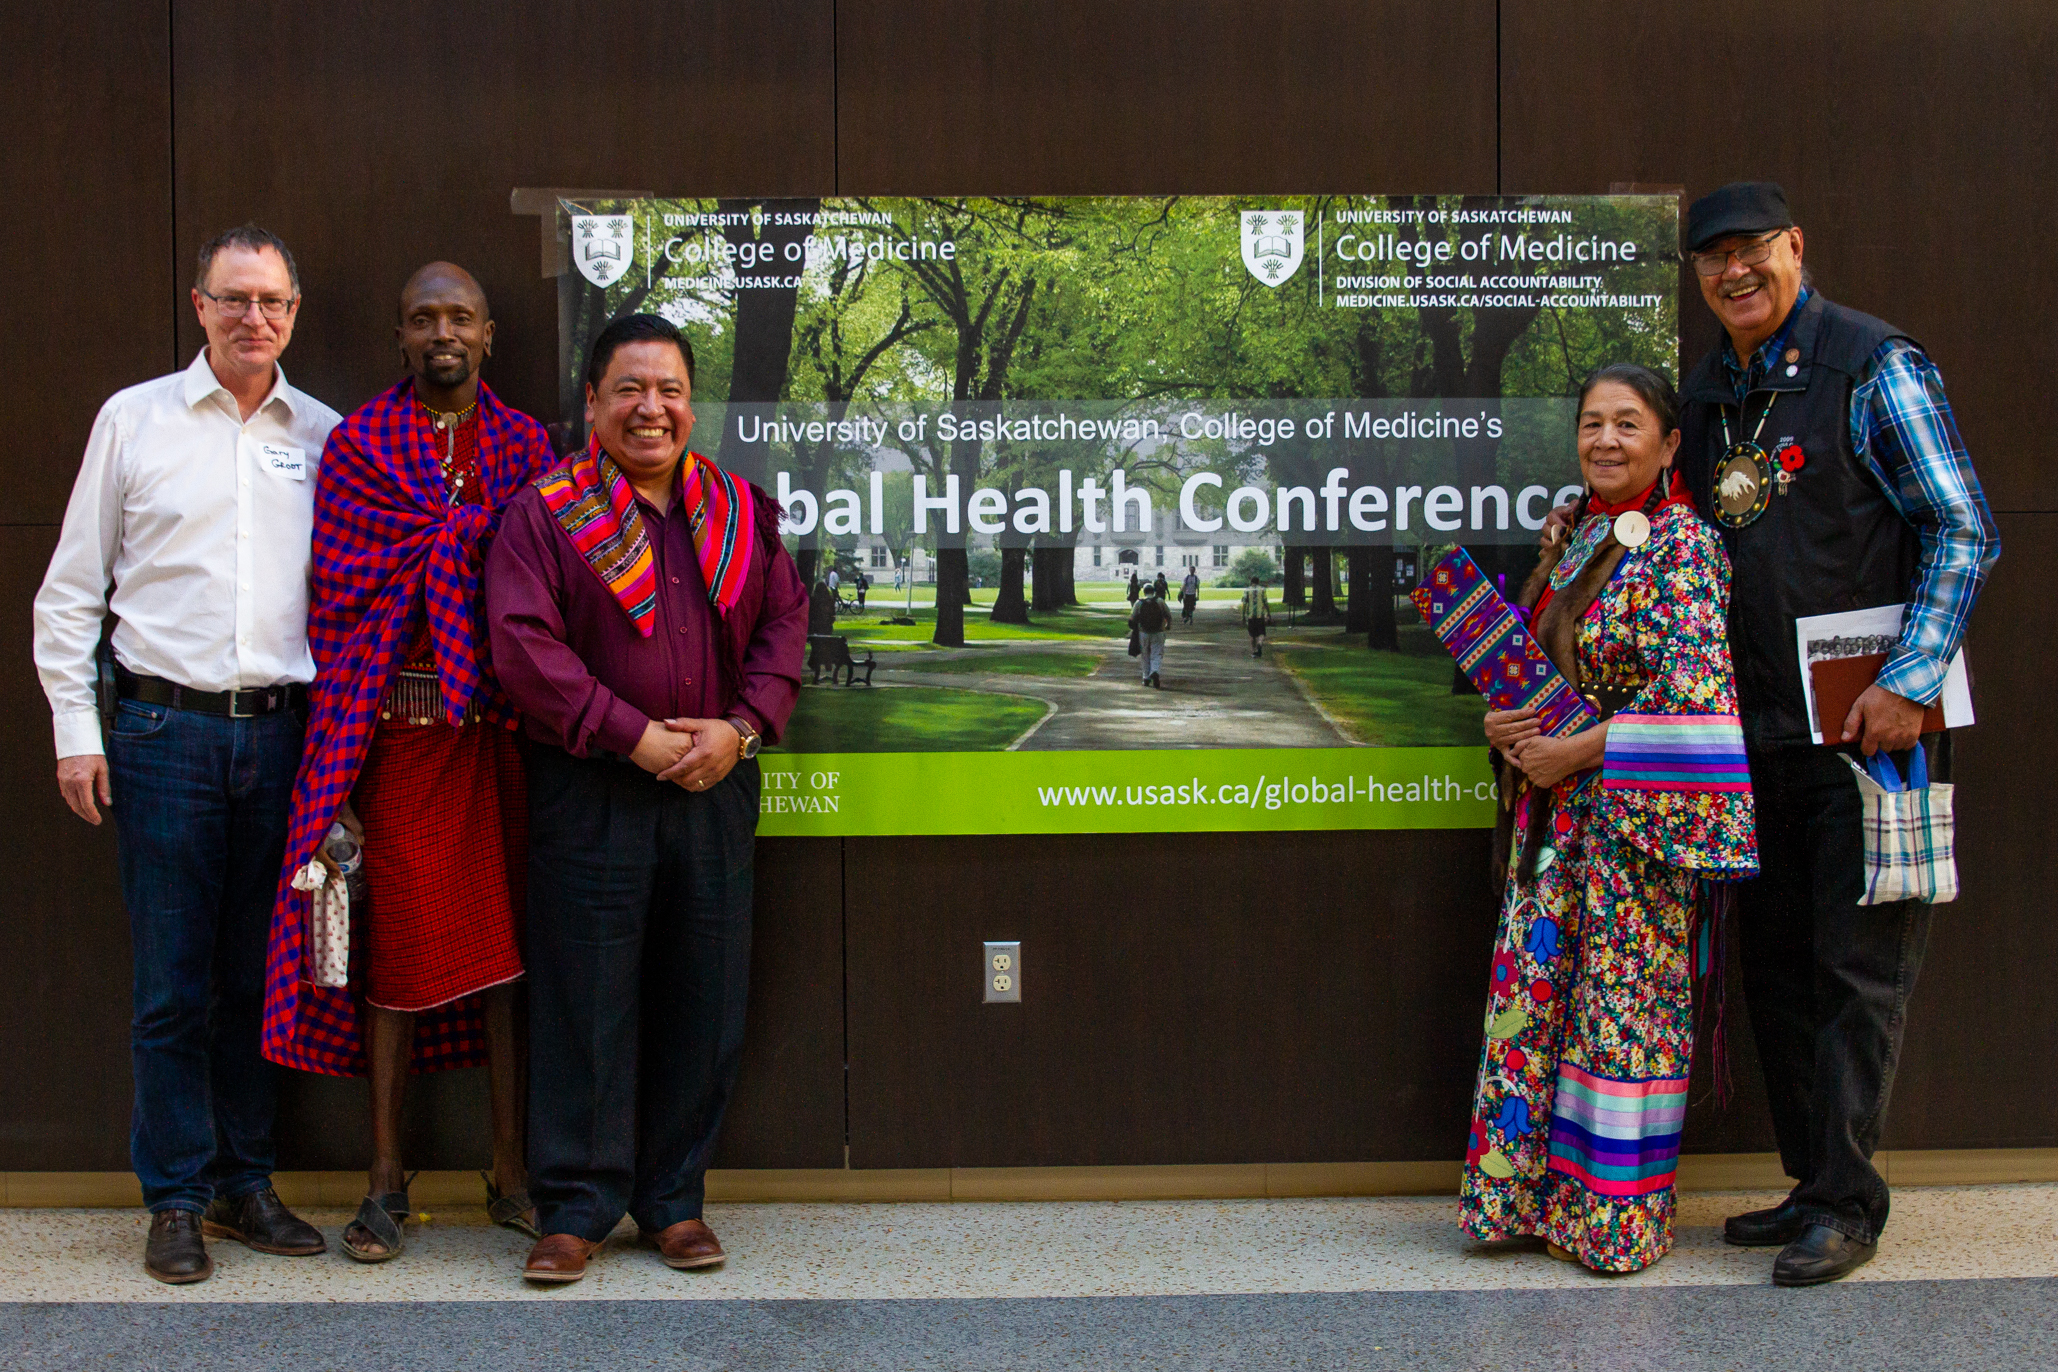 Dr. Gary Groot with (left to right) Lialo Salaash, Leonzo Barreno, and Lorna and Eugene Arcand at the College of Medicine's 2018 Global Health Conference held at the University of Saskatchewan. The team presented a panel discussion looking at the ways colonialism impacts Indigenous health in three distinct global communities.